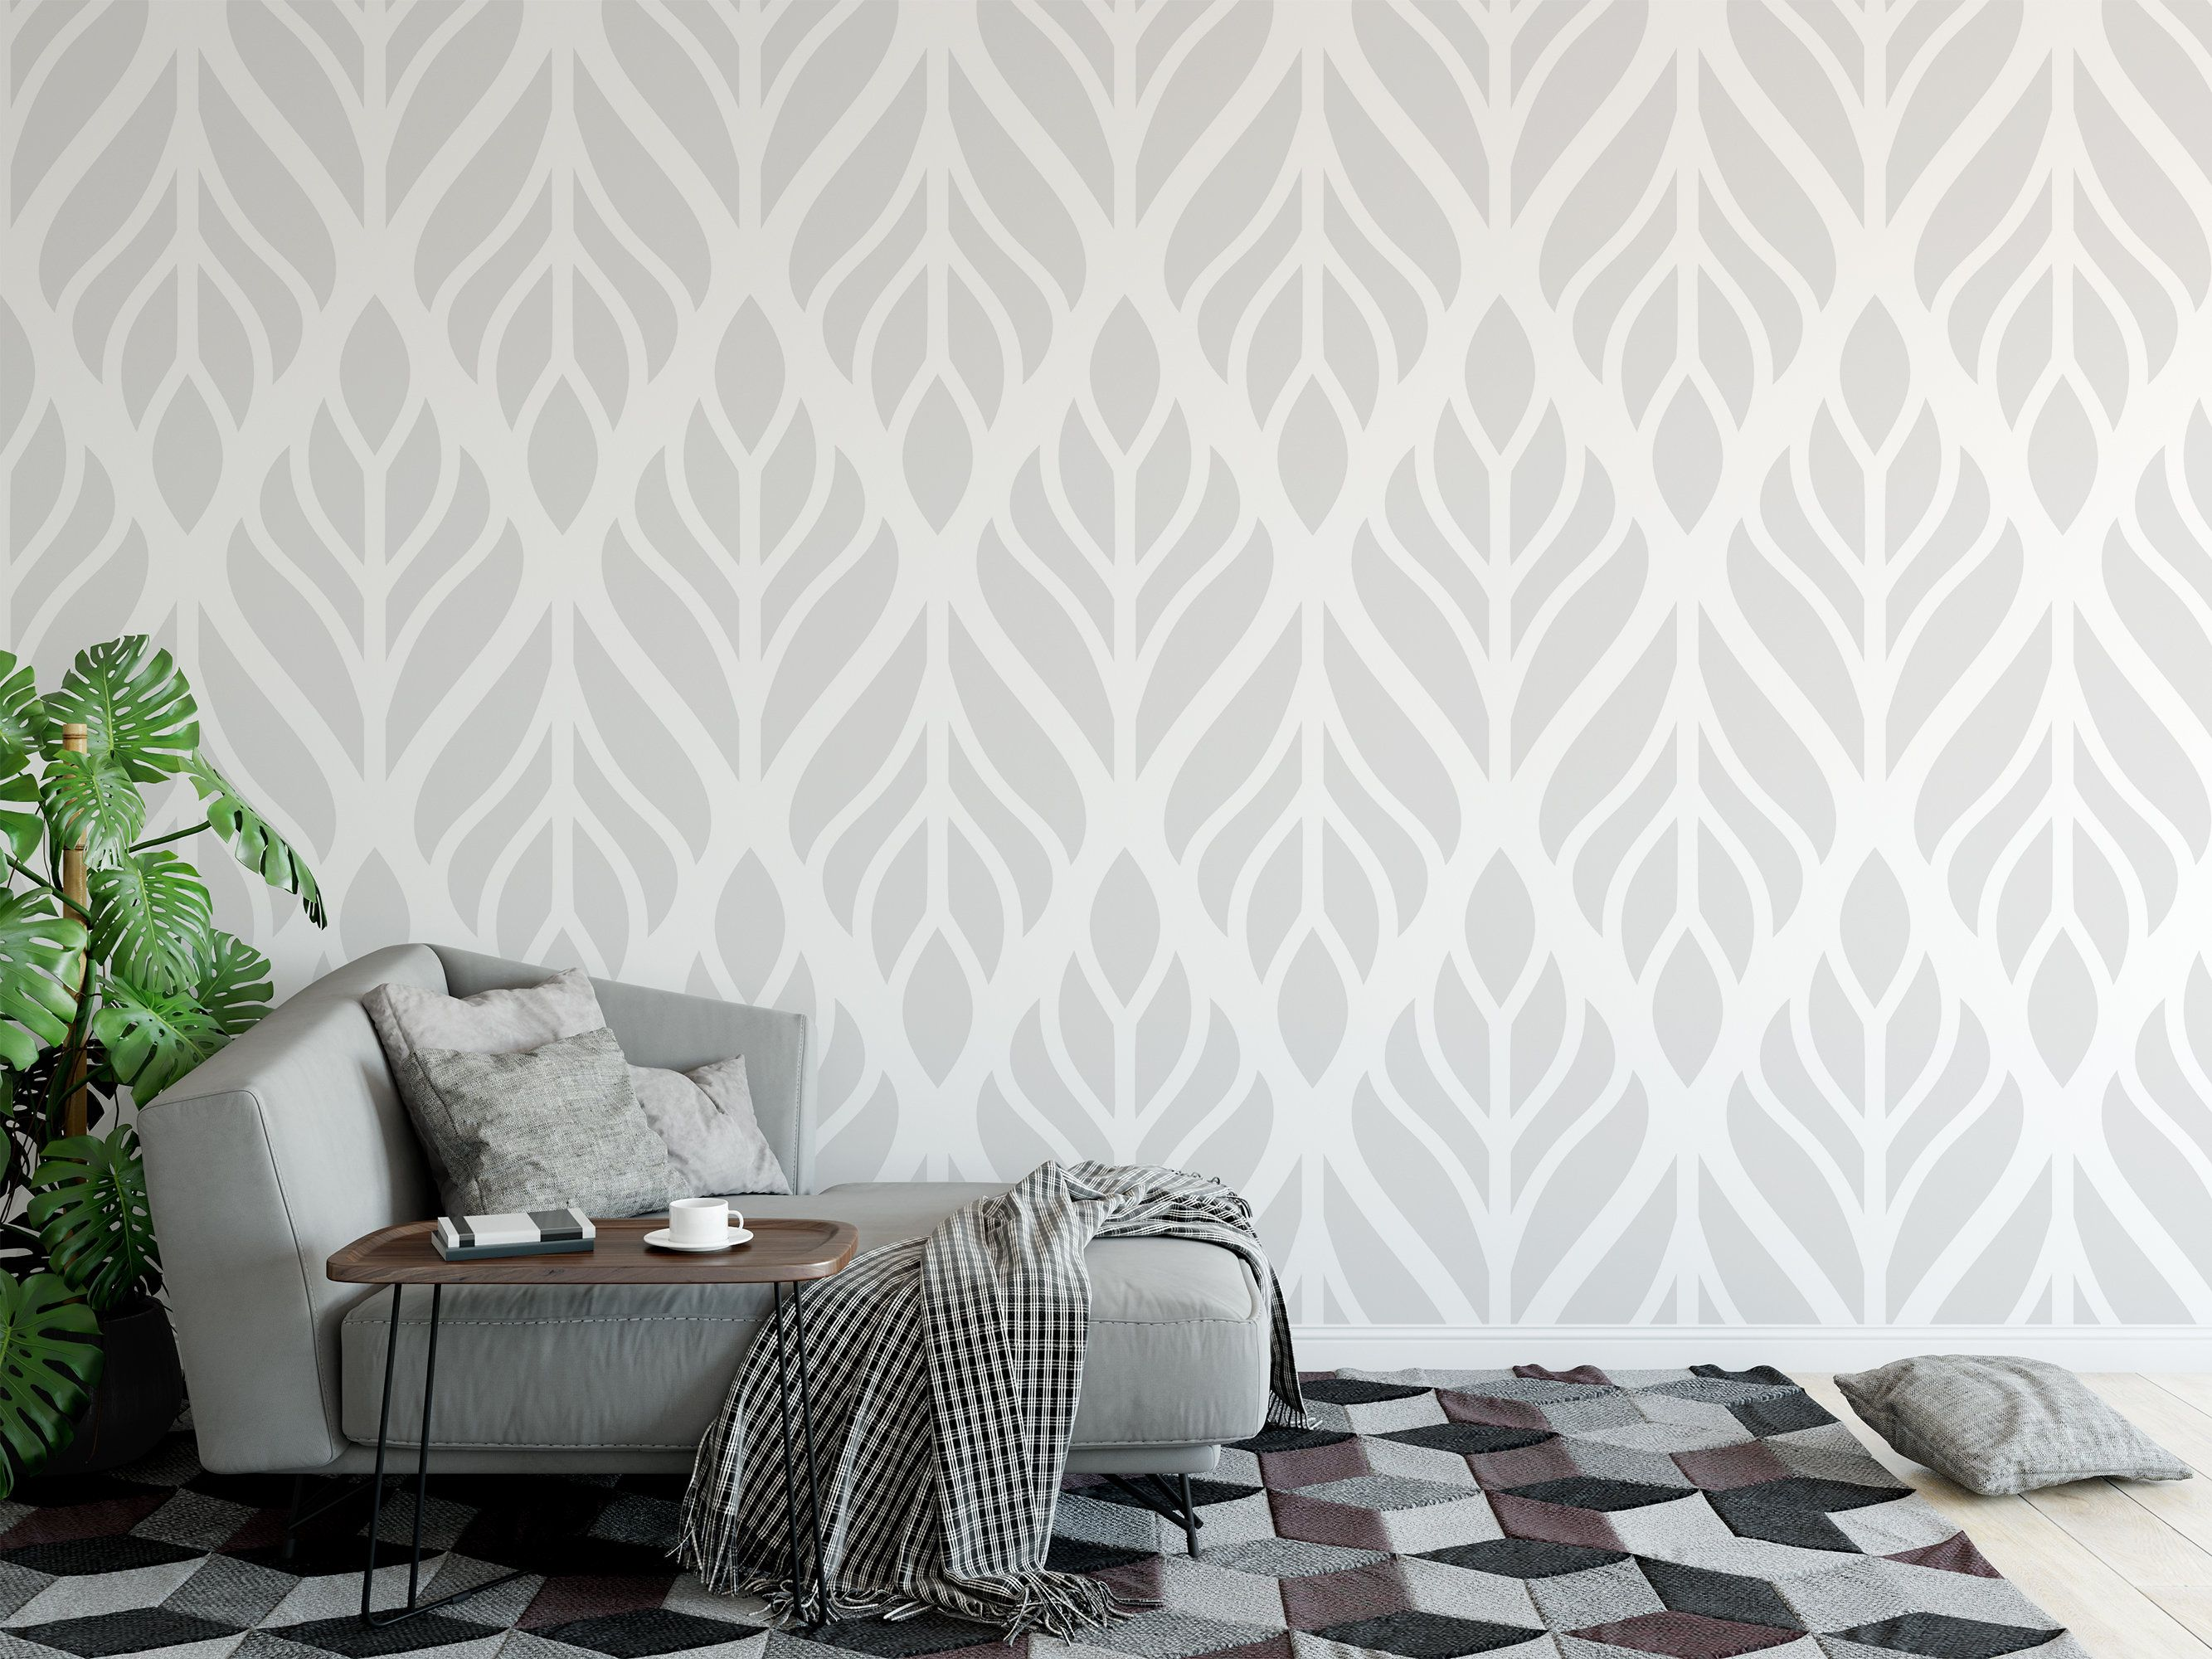 Removable Peel And Stick Wallpaper Modern Elegant Floral Etsy Peel And Stick Wallpaper Living Room Designs Removable Wallpaper